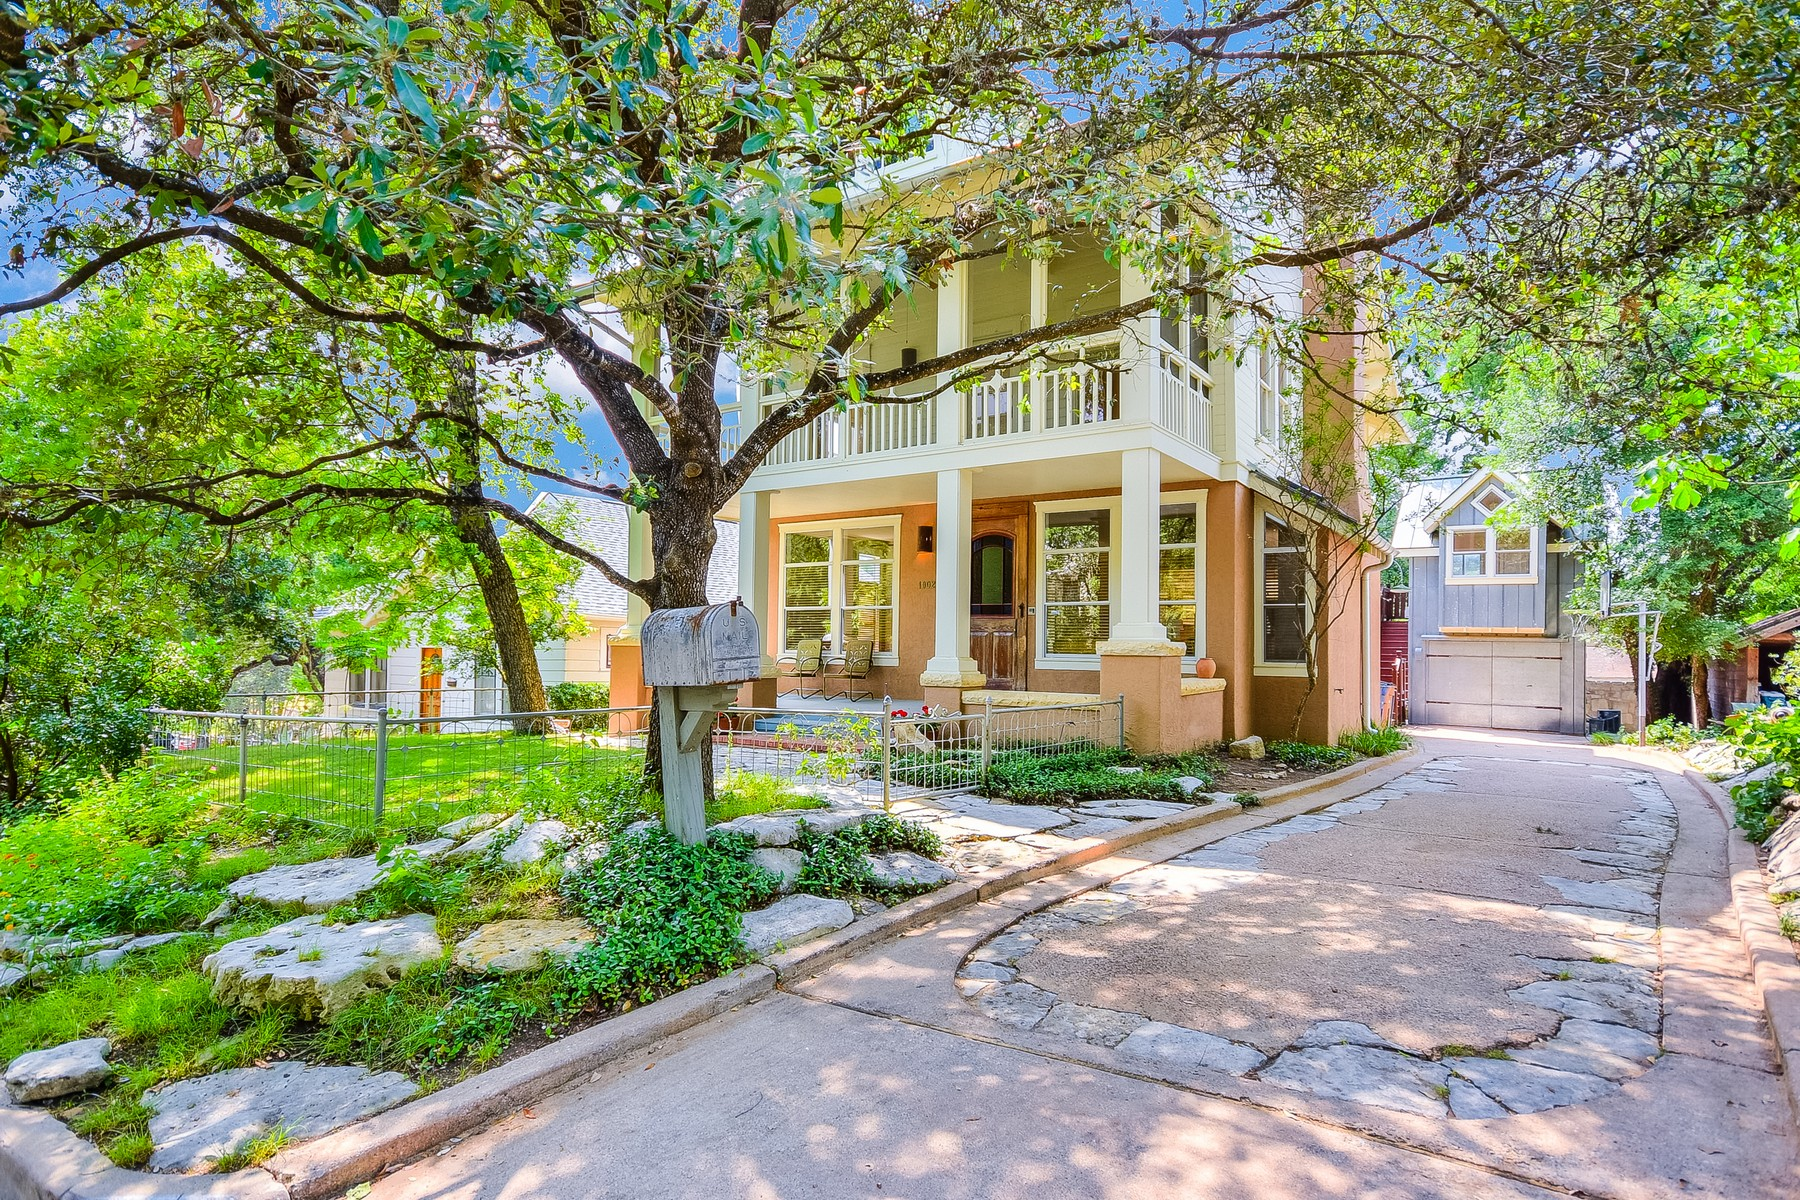 Other Residential for Rent at Rare Clarksville Lease Opportunity 1002 Lorrain St Austin, Texas 78703 United States